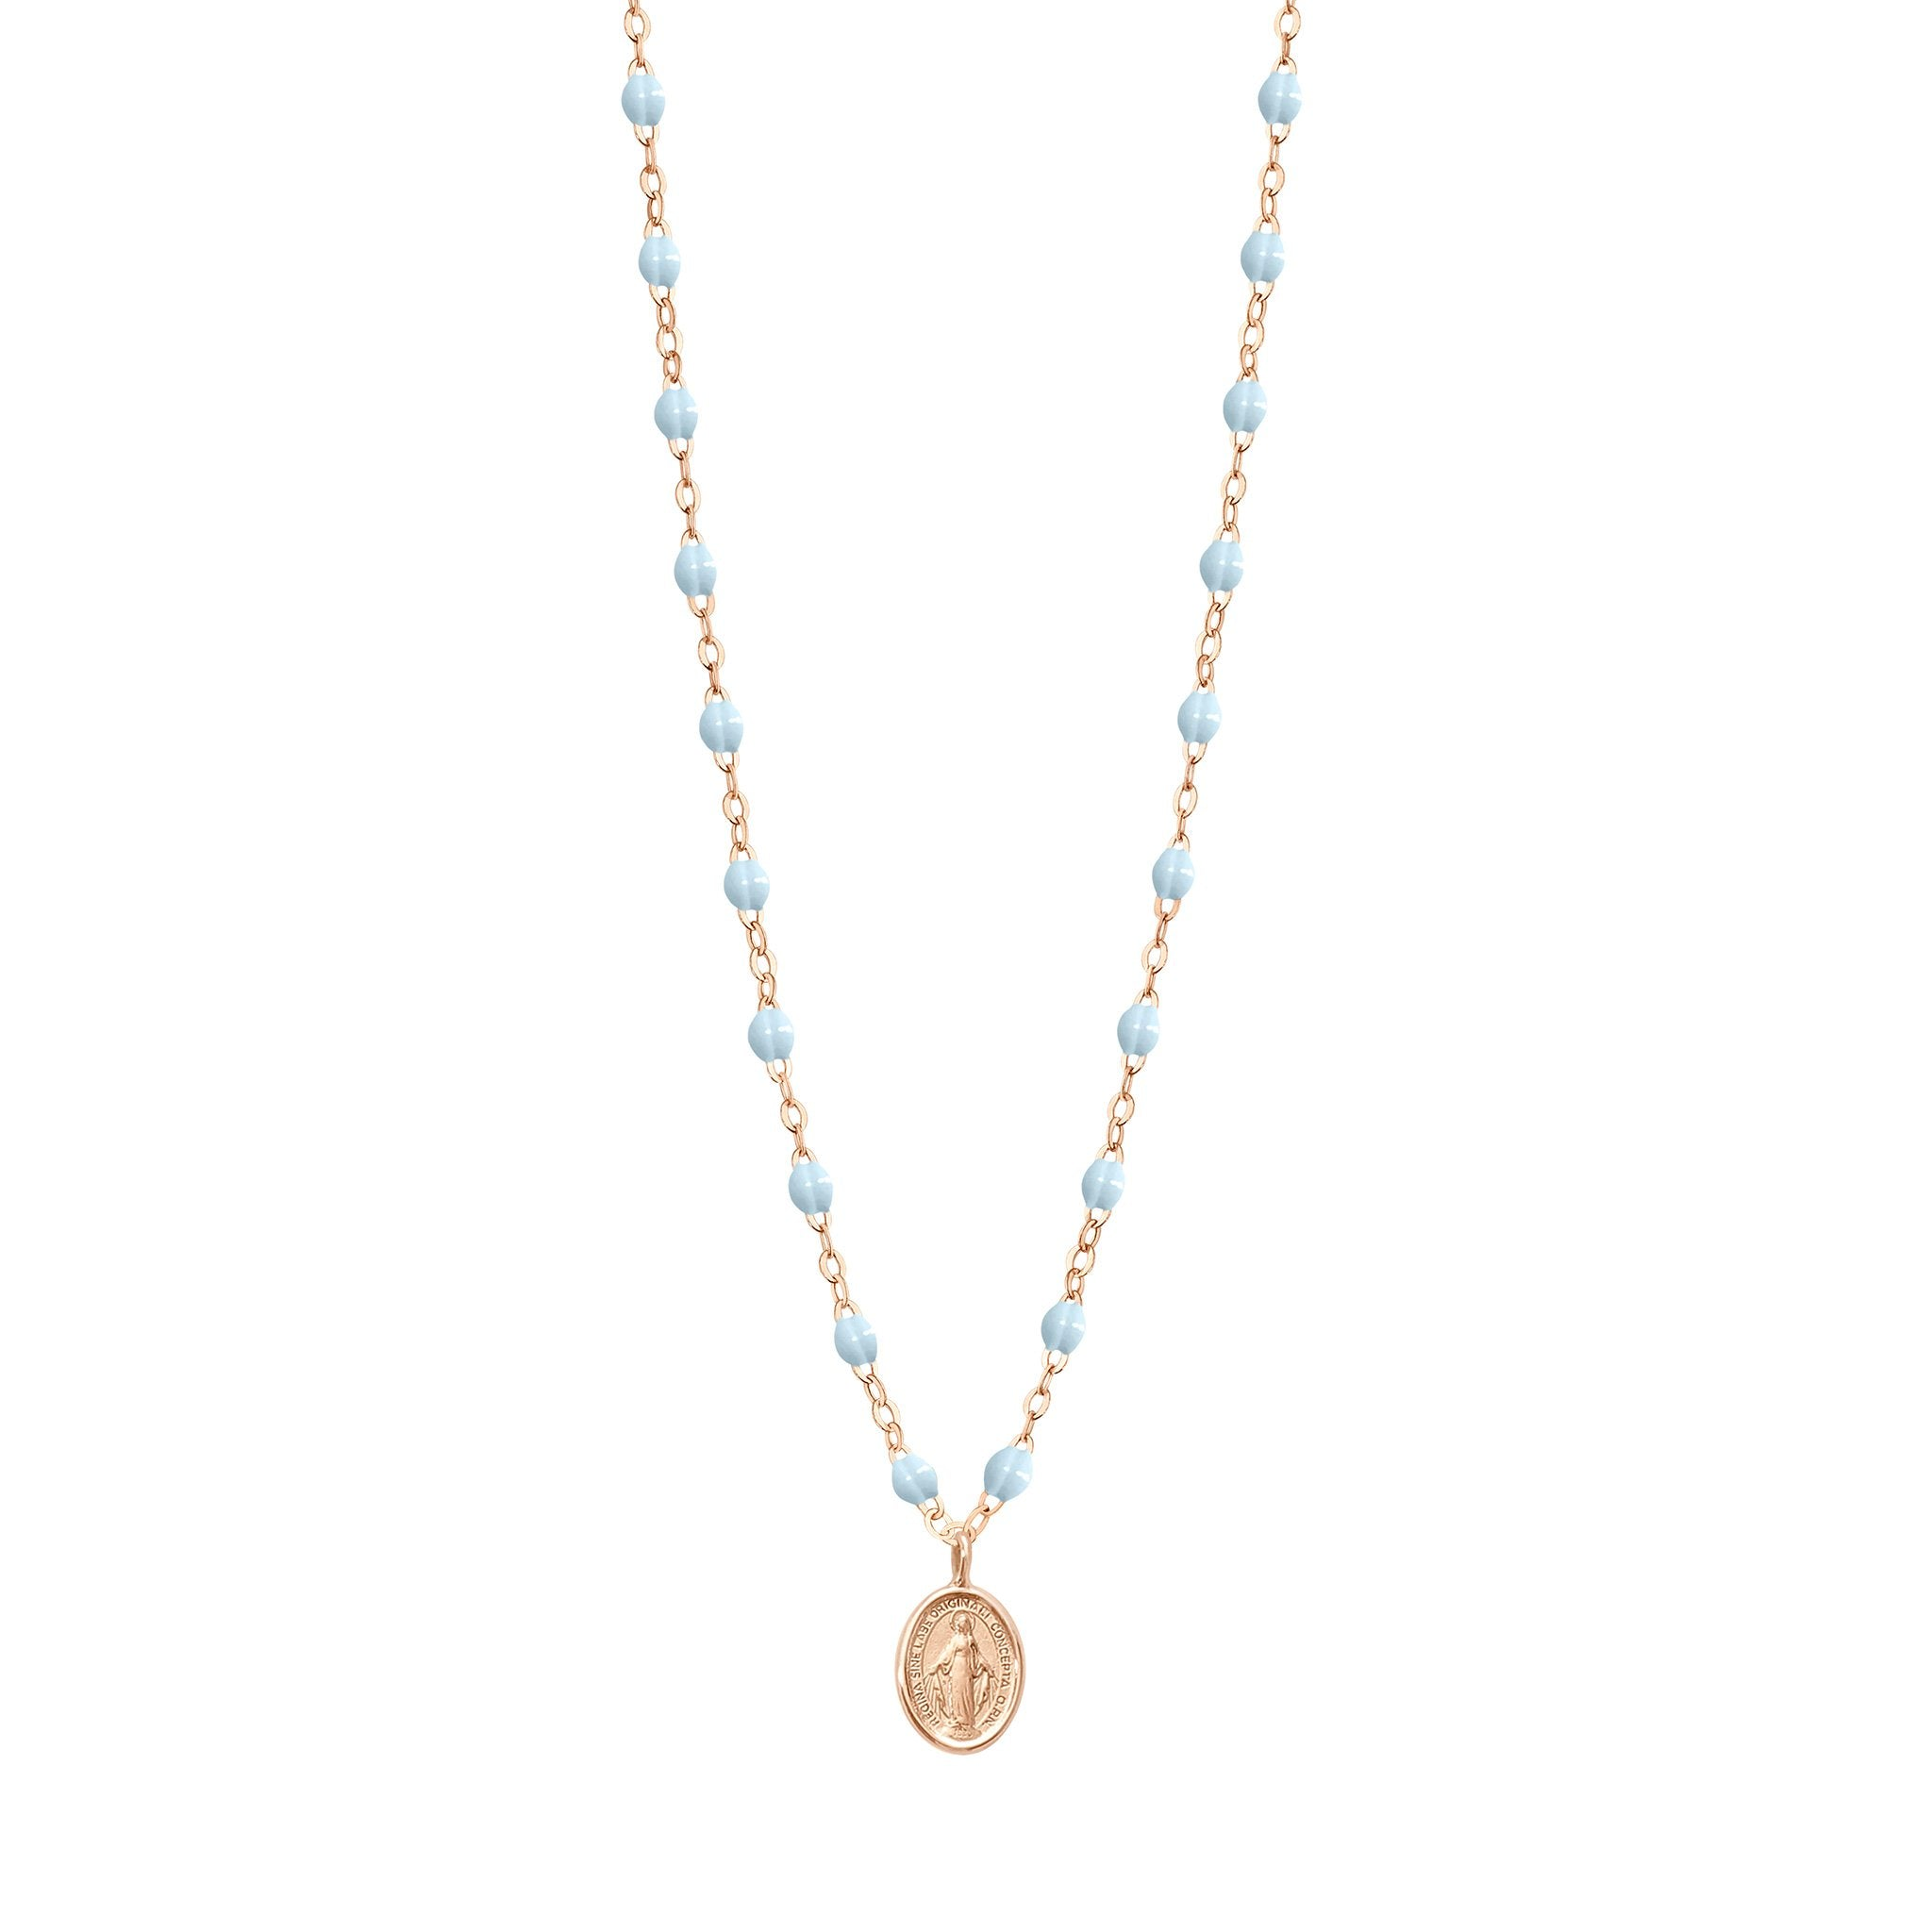 Gigi Clozeau - Madone Charm Classic Gigi Baby Blue necklace, Rose Gold, 16.5""